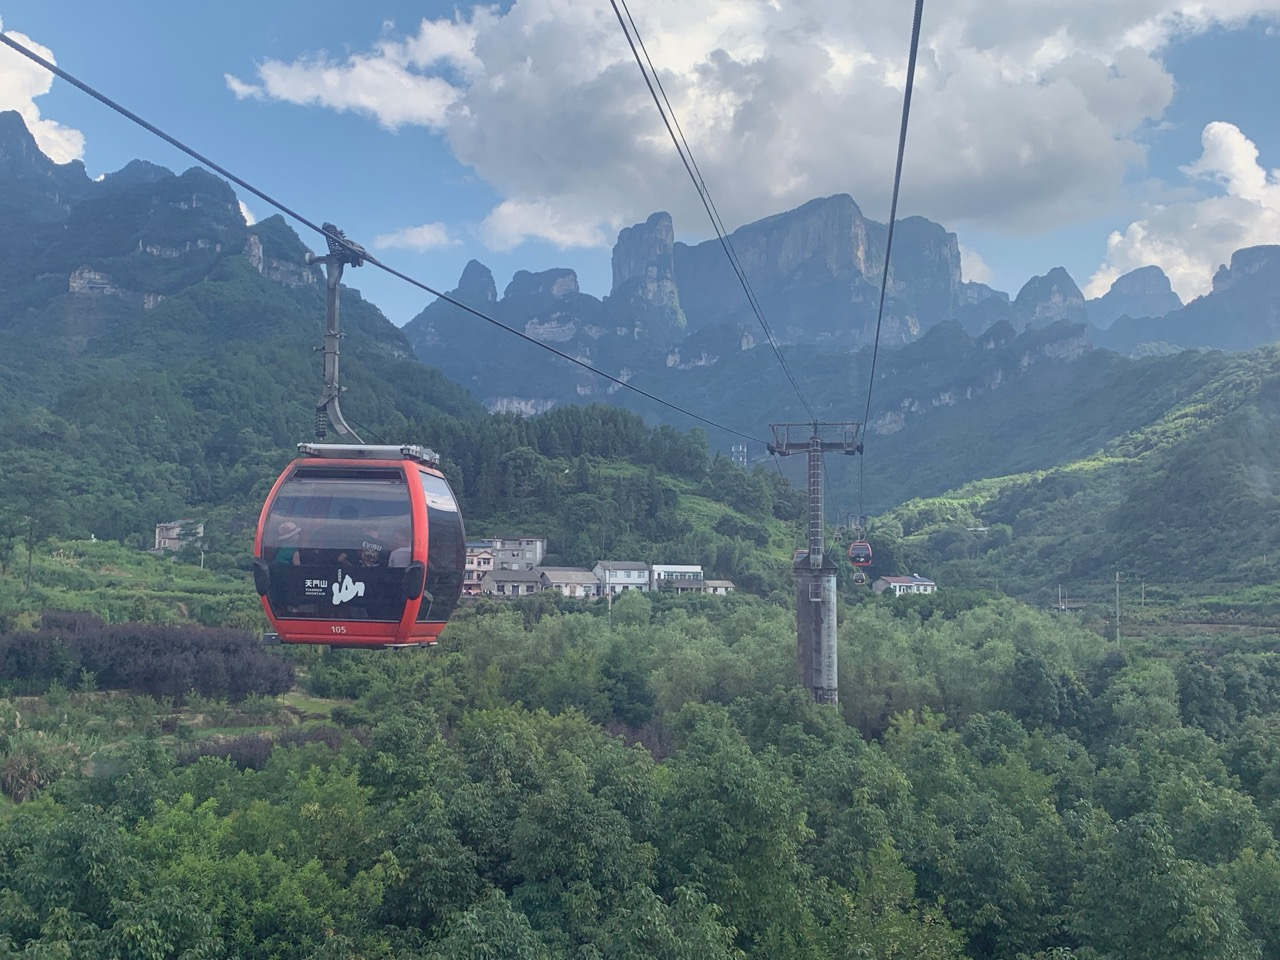 The cable car down the mountain—now that was a nice ride!